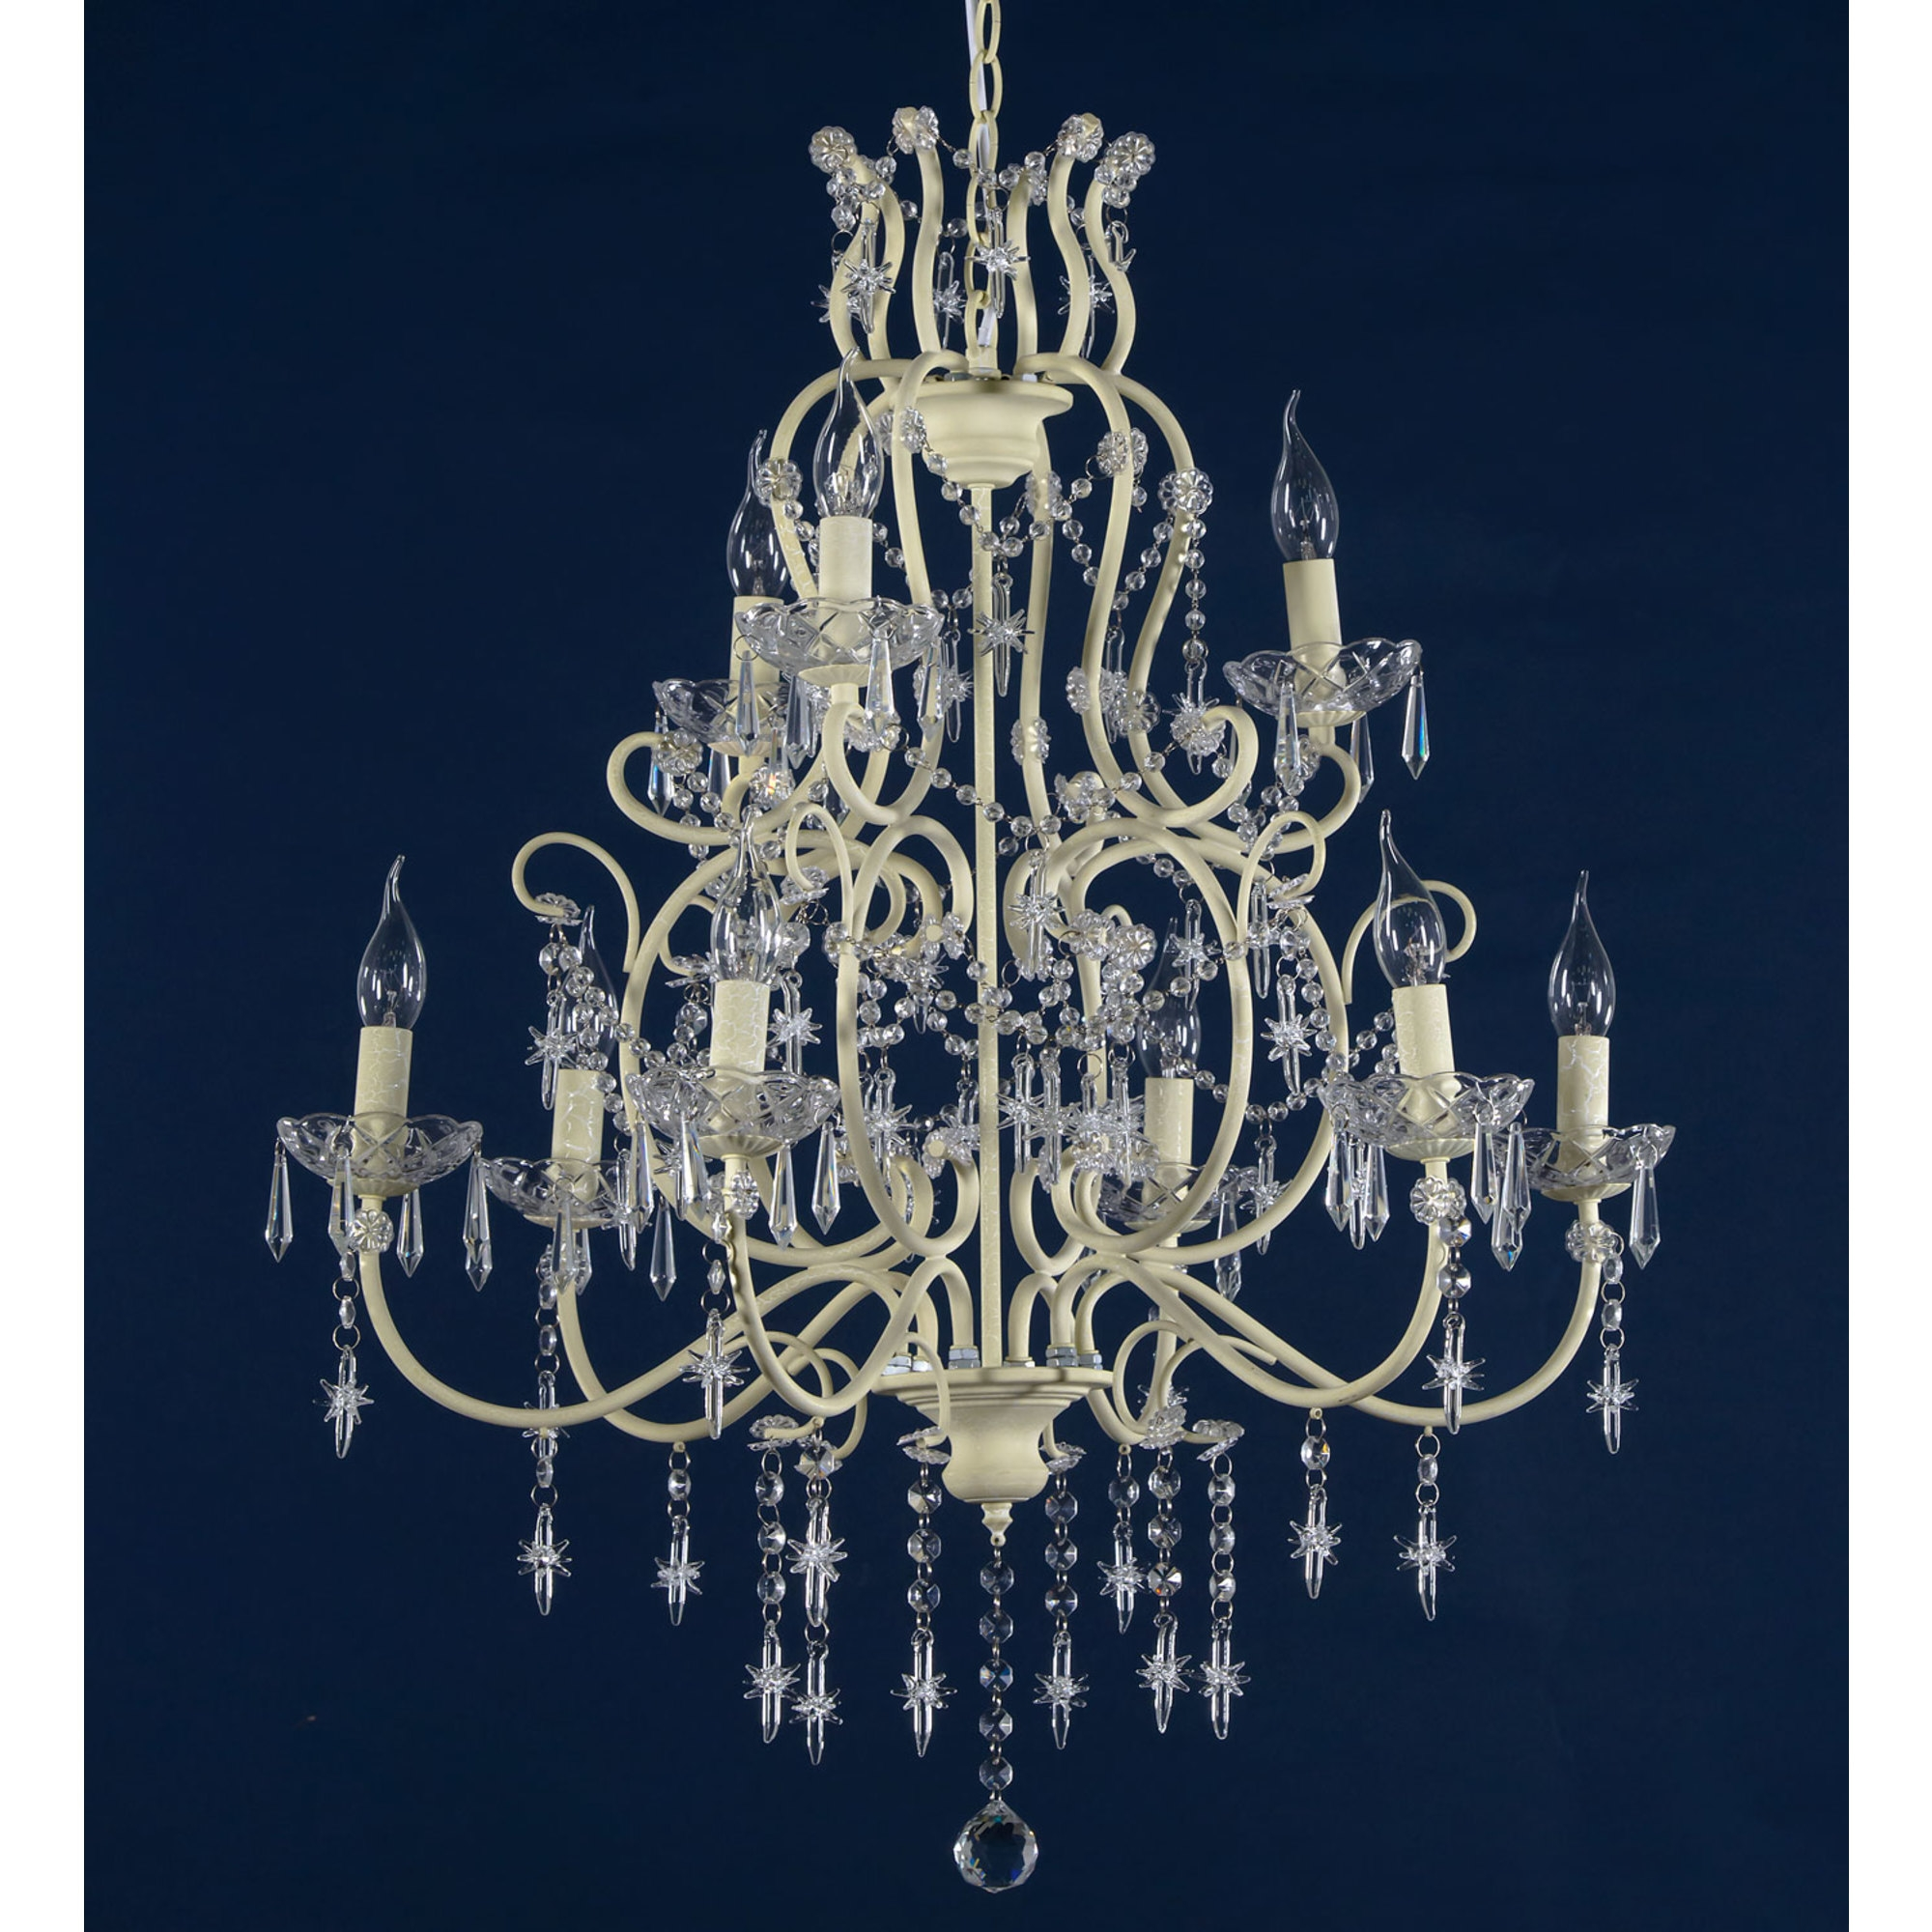 Star-Shaped Drops 9 Light Chandelier - Cream